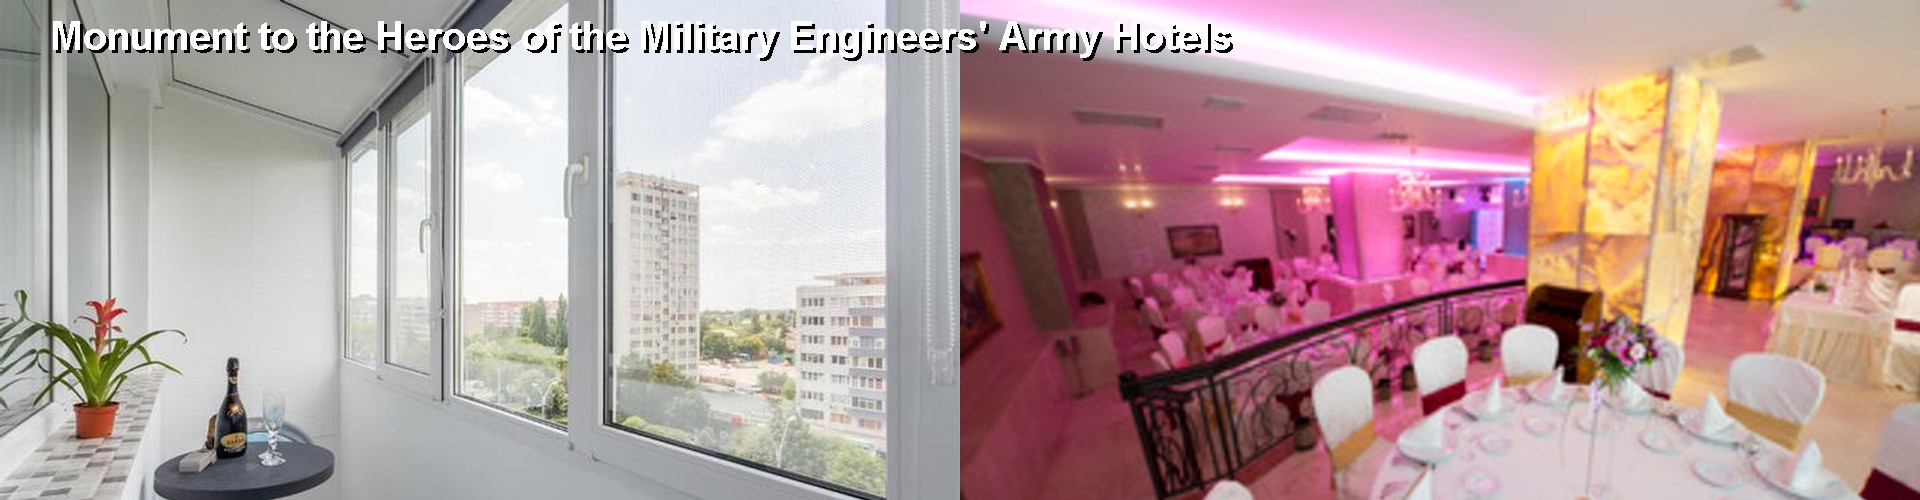 5 Best Hotels near Monument to the Heroes of the Military Engineers' Army